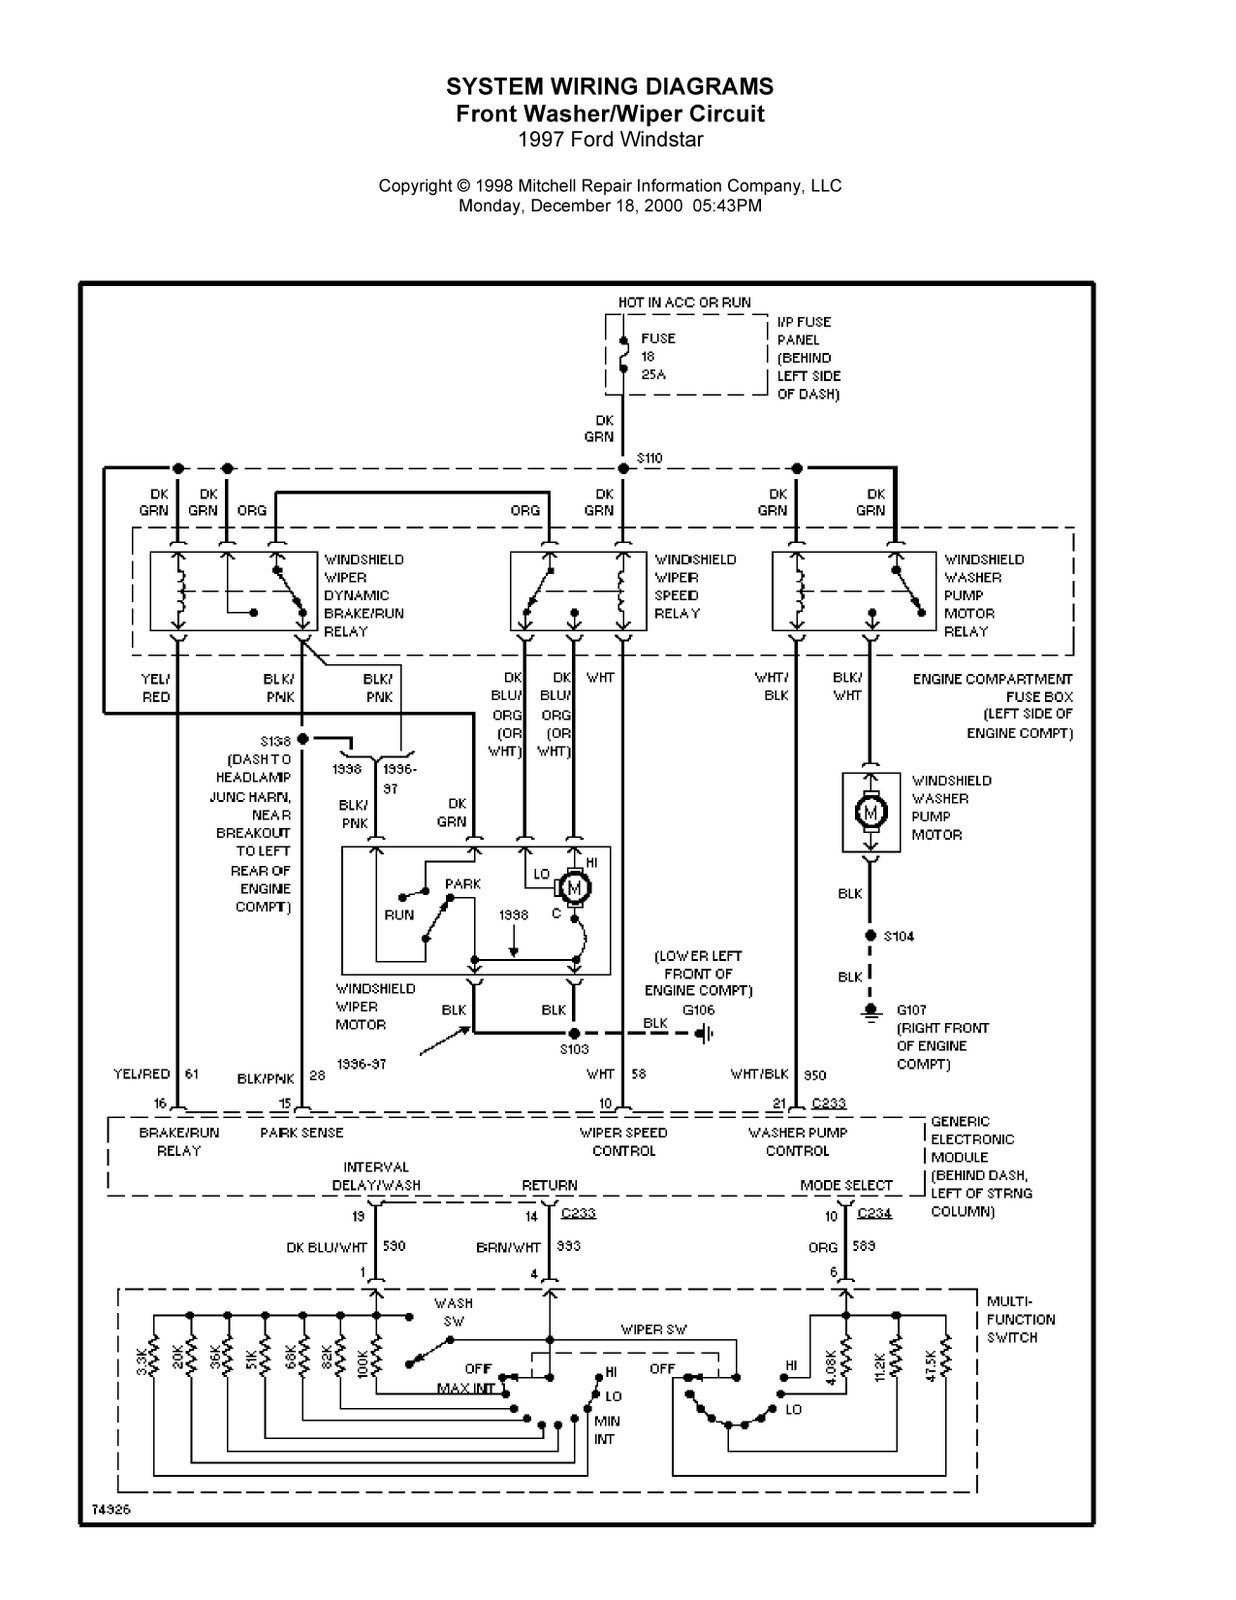 File Name Charging System Wiring Diagram For Ford